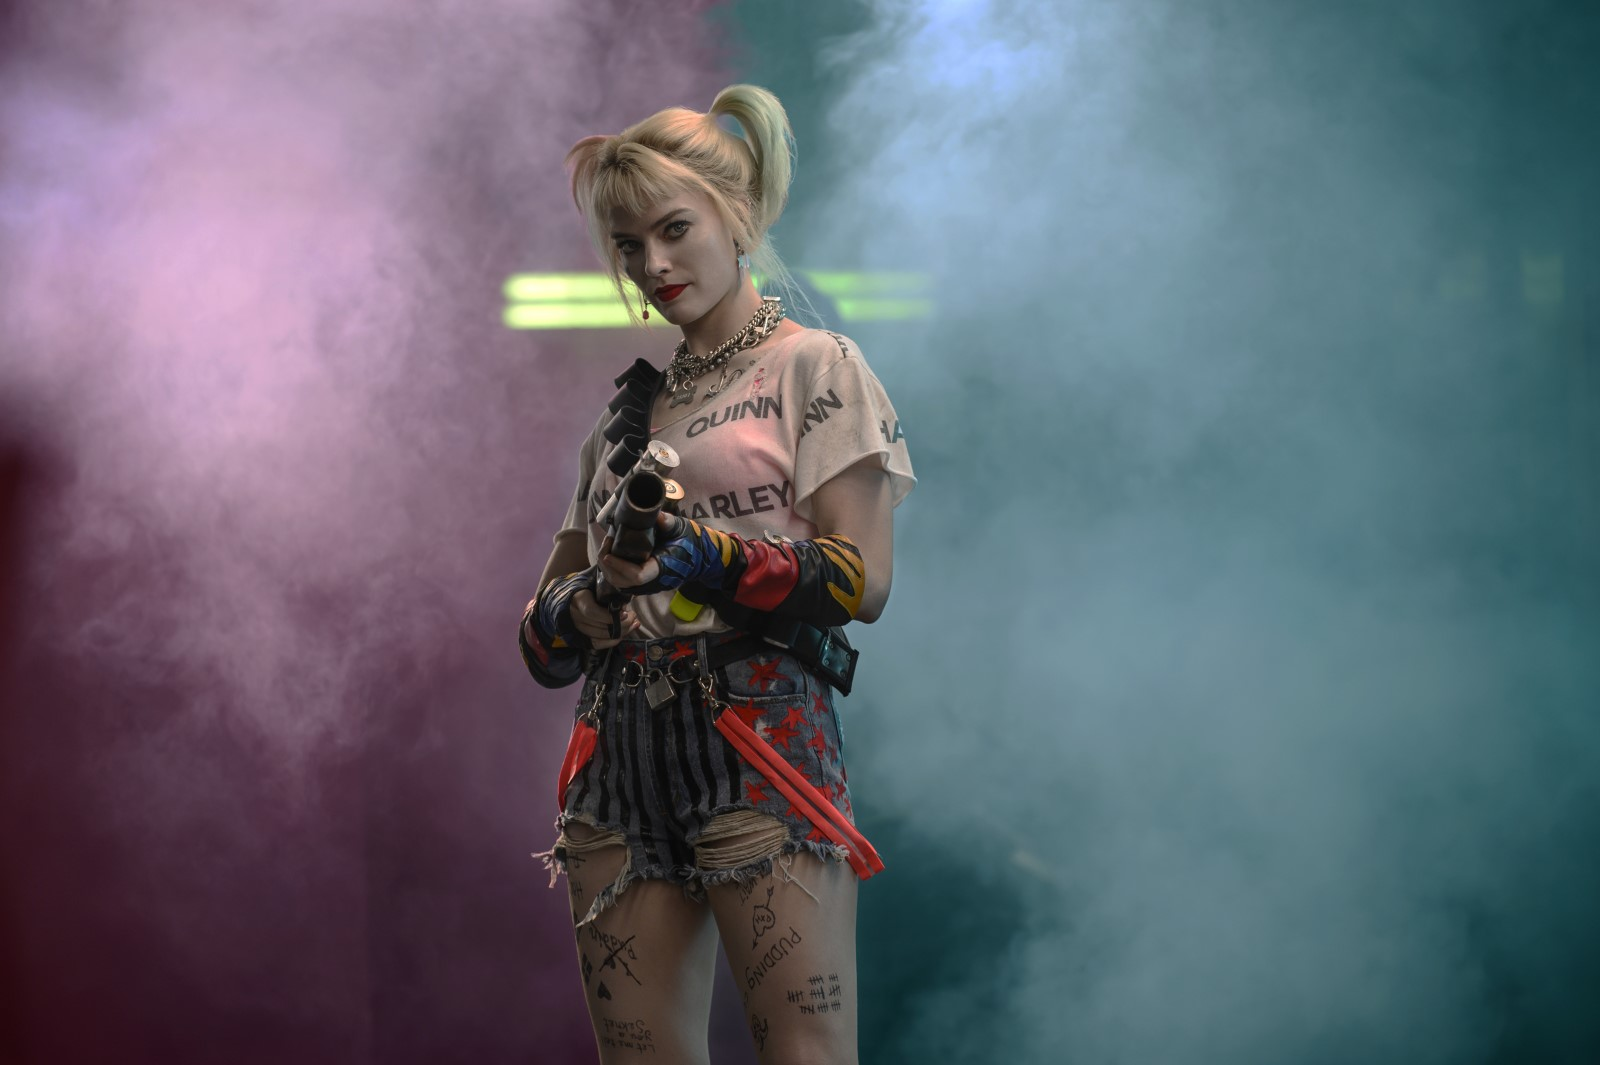 Birds of Prey et la fantabuleuse histoire de Harley Quinn - Photo Margot Robbie avis critique